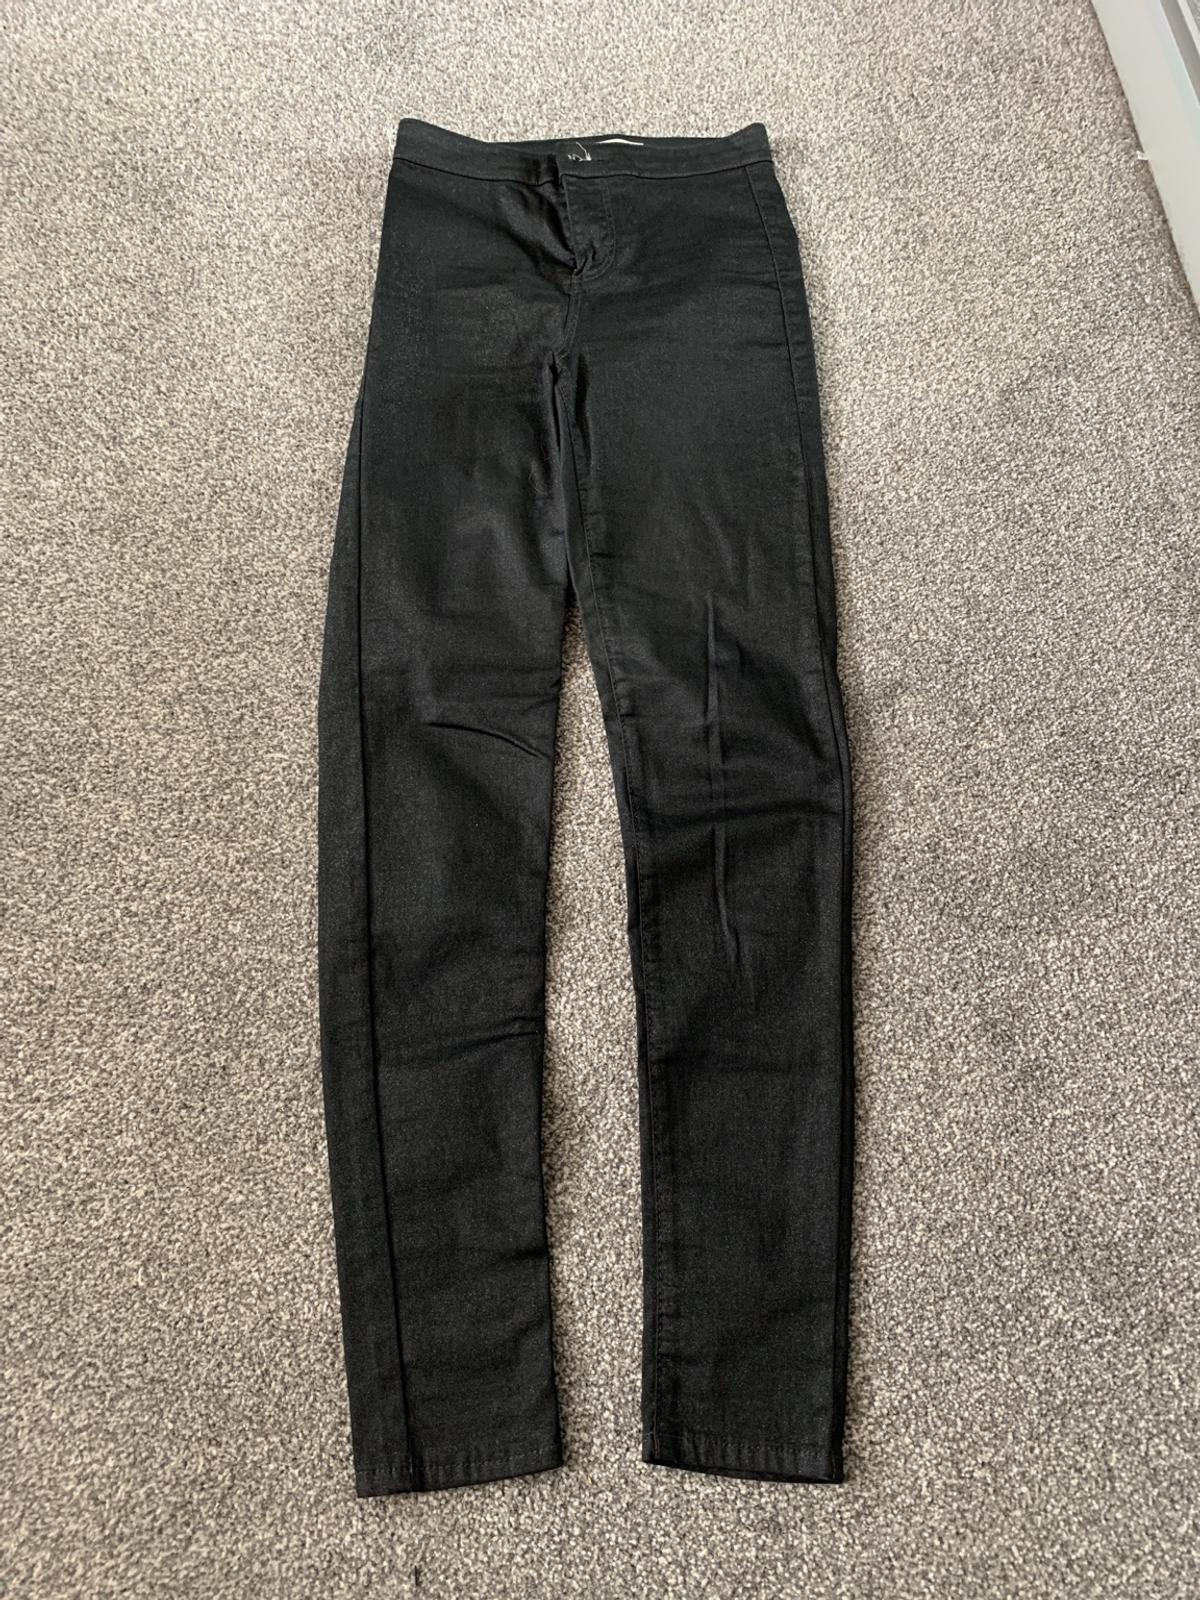 Black Topshop Joni Jeans Size W:26 L:32. Base of Jeans is black with glitter effect.